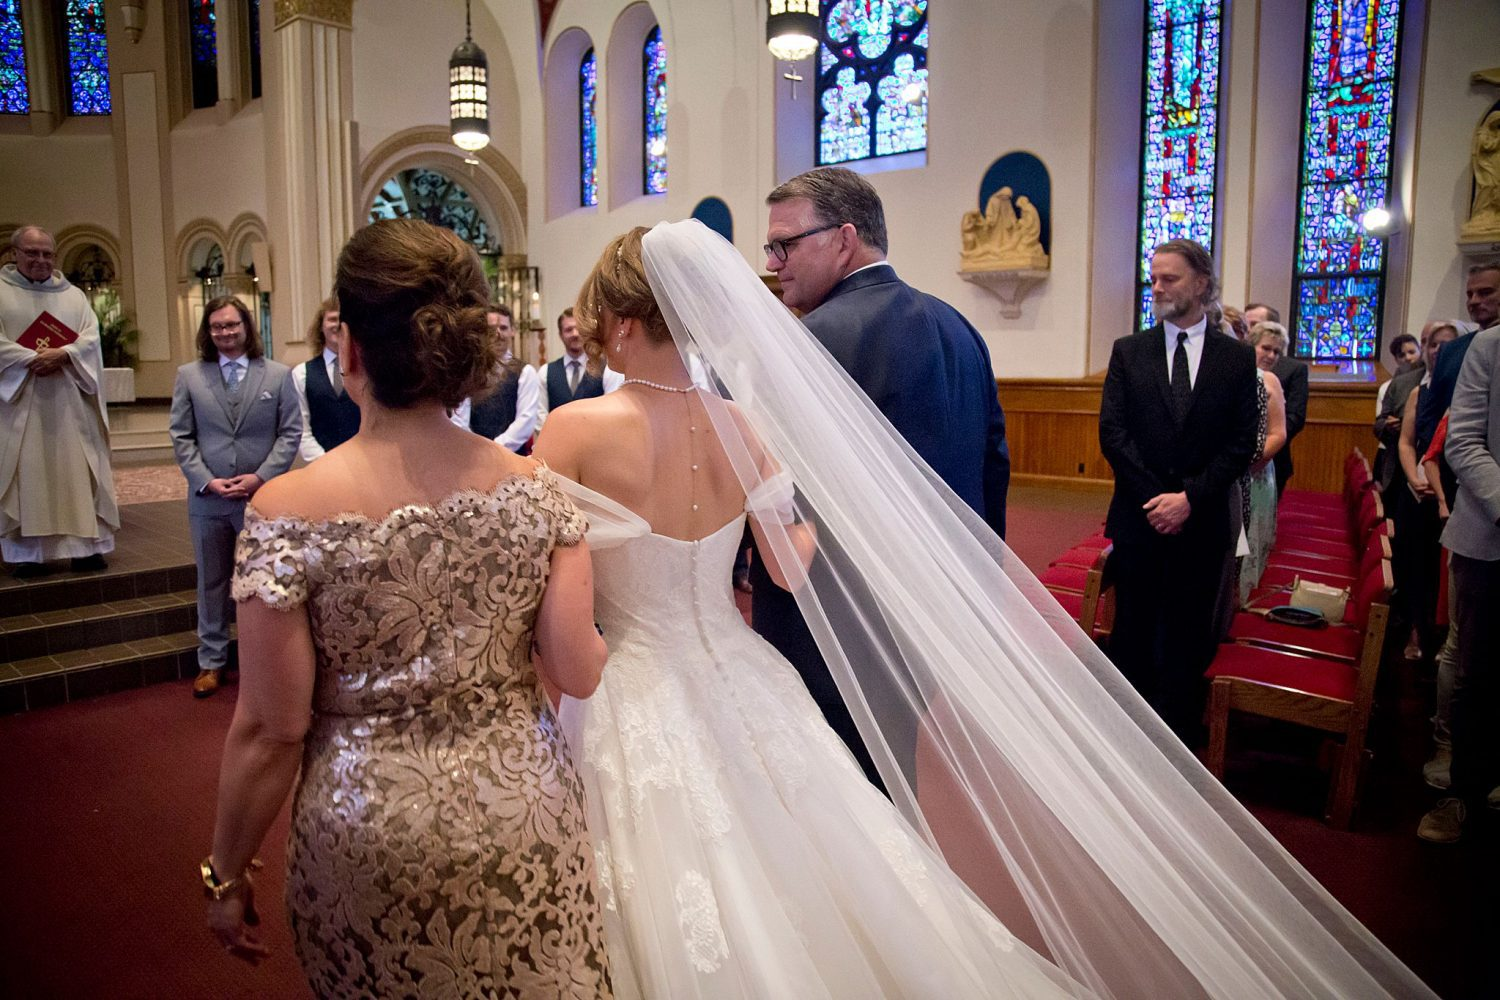 Bride's cathedral length veil trailing behind her at St. Ambrose Cathedral as she is handed off to her groom.